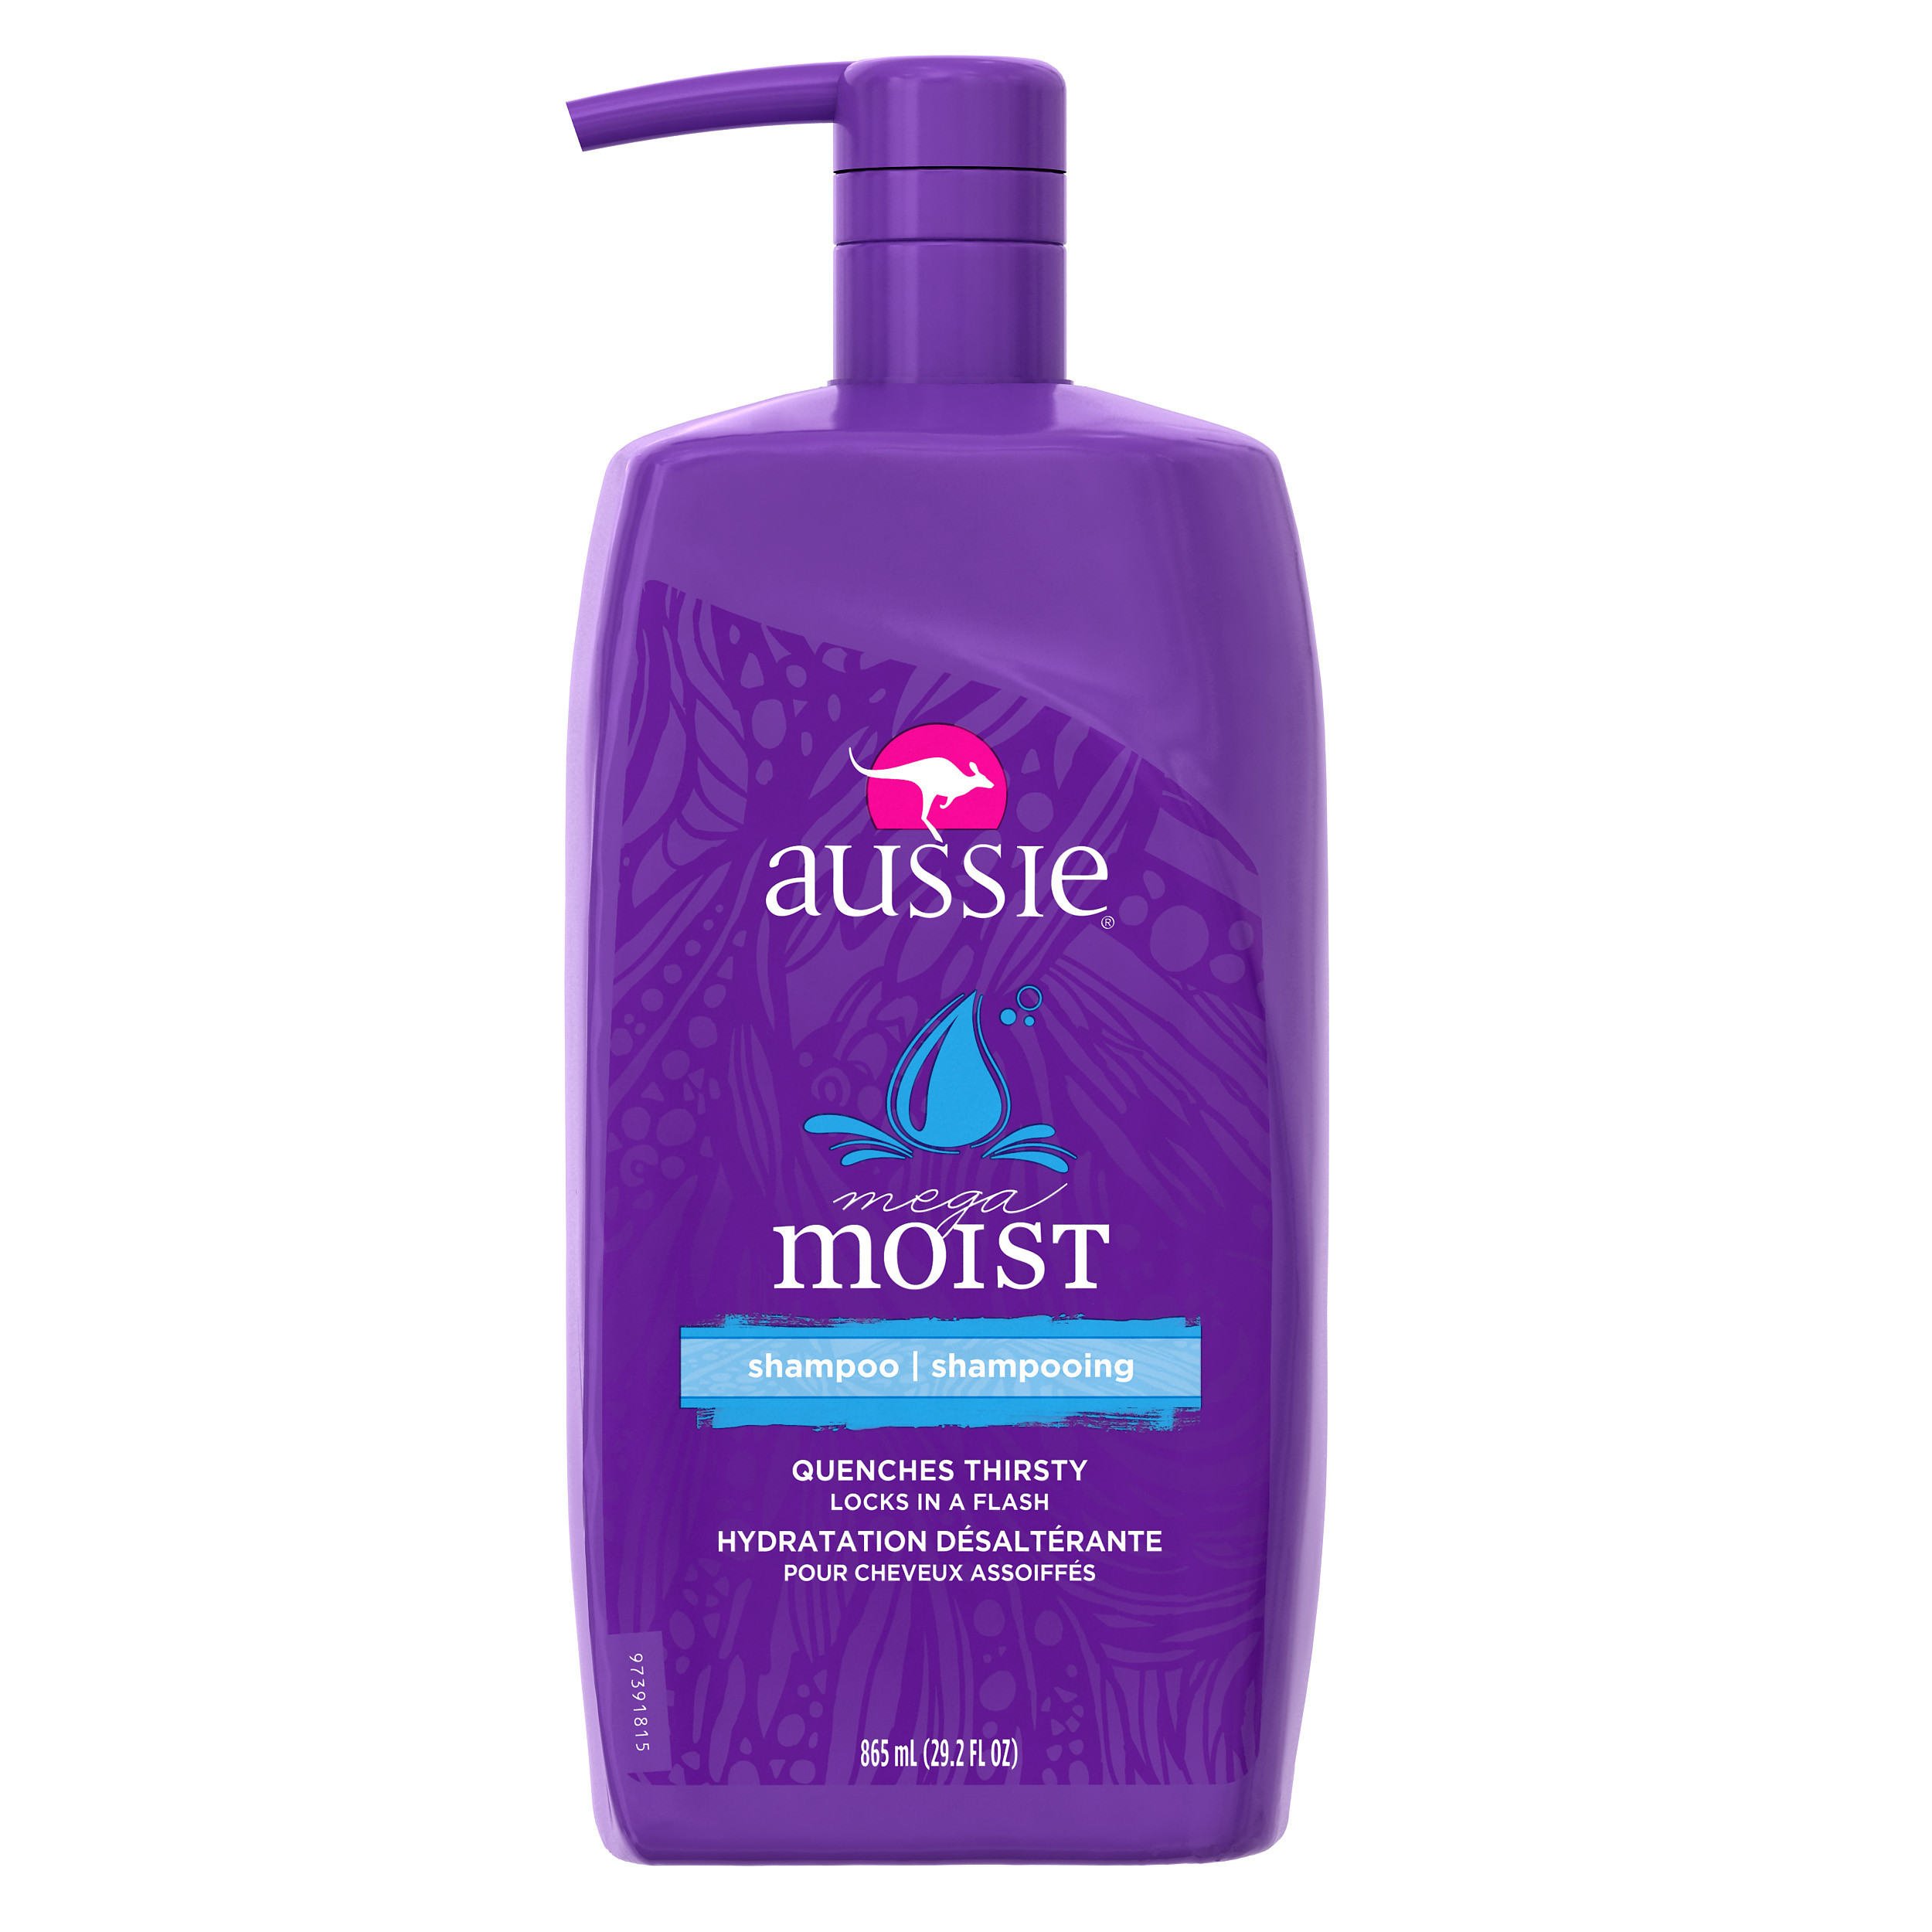 Aussie Mega Moist Shampoo 29.2 fl oz with Pump